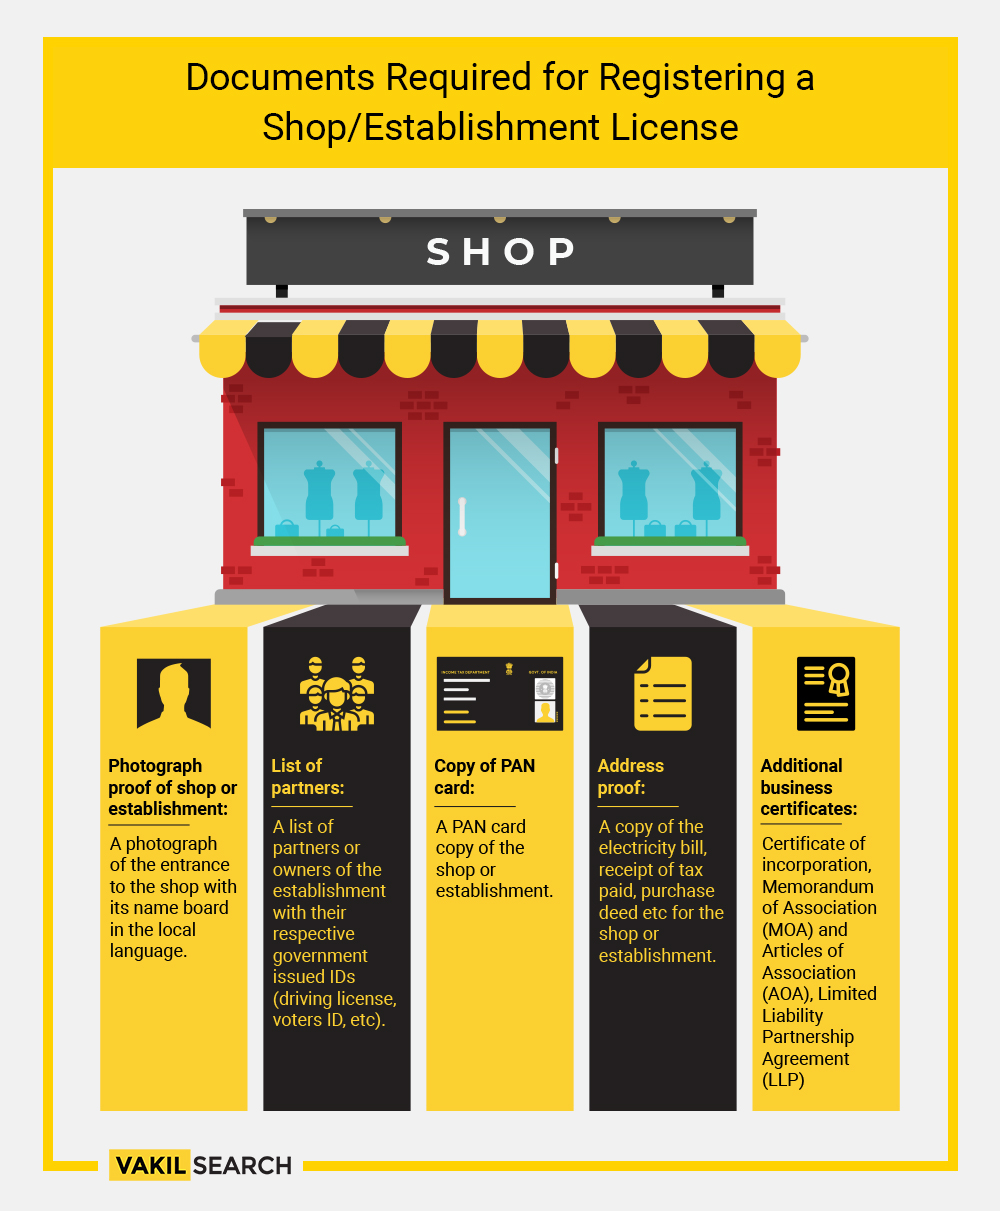 Documents Required for registering a Shop Establishment license